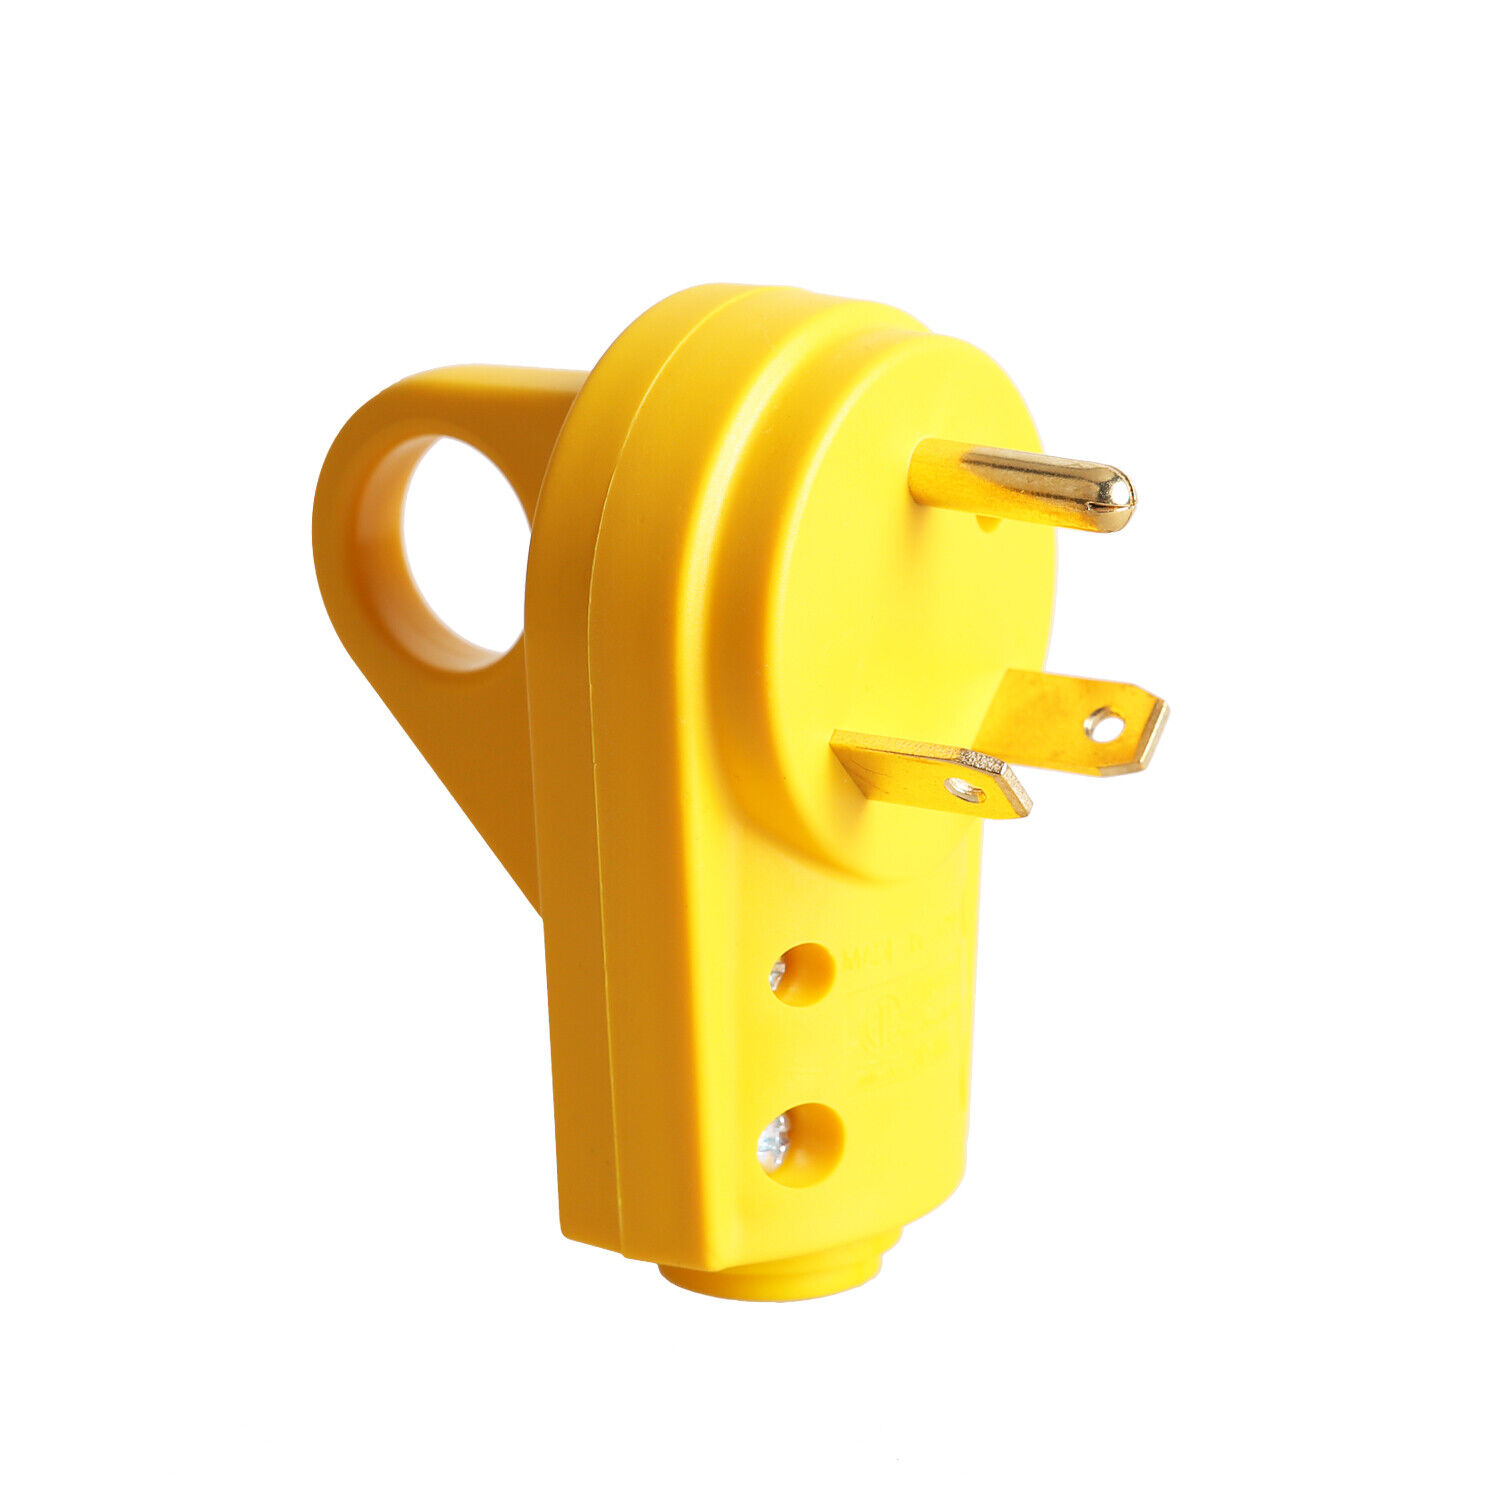 RV 30AMP Replaceman Male Plug Safer Plug with an Easier Grip eBay Motors